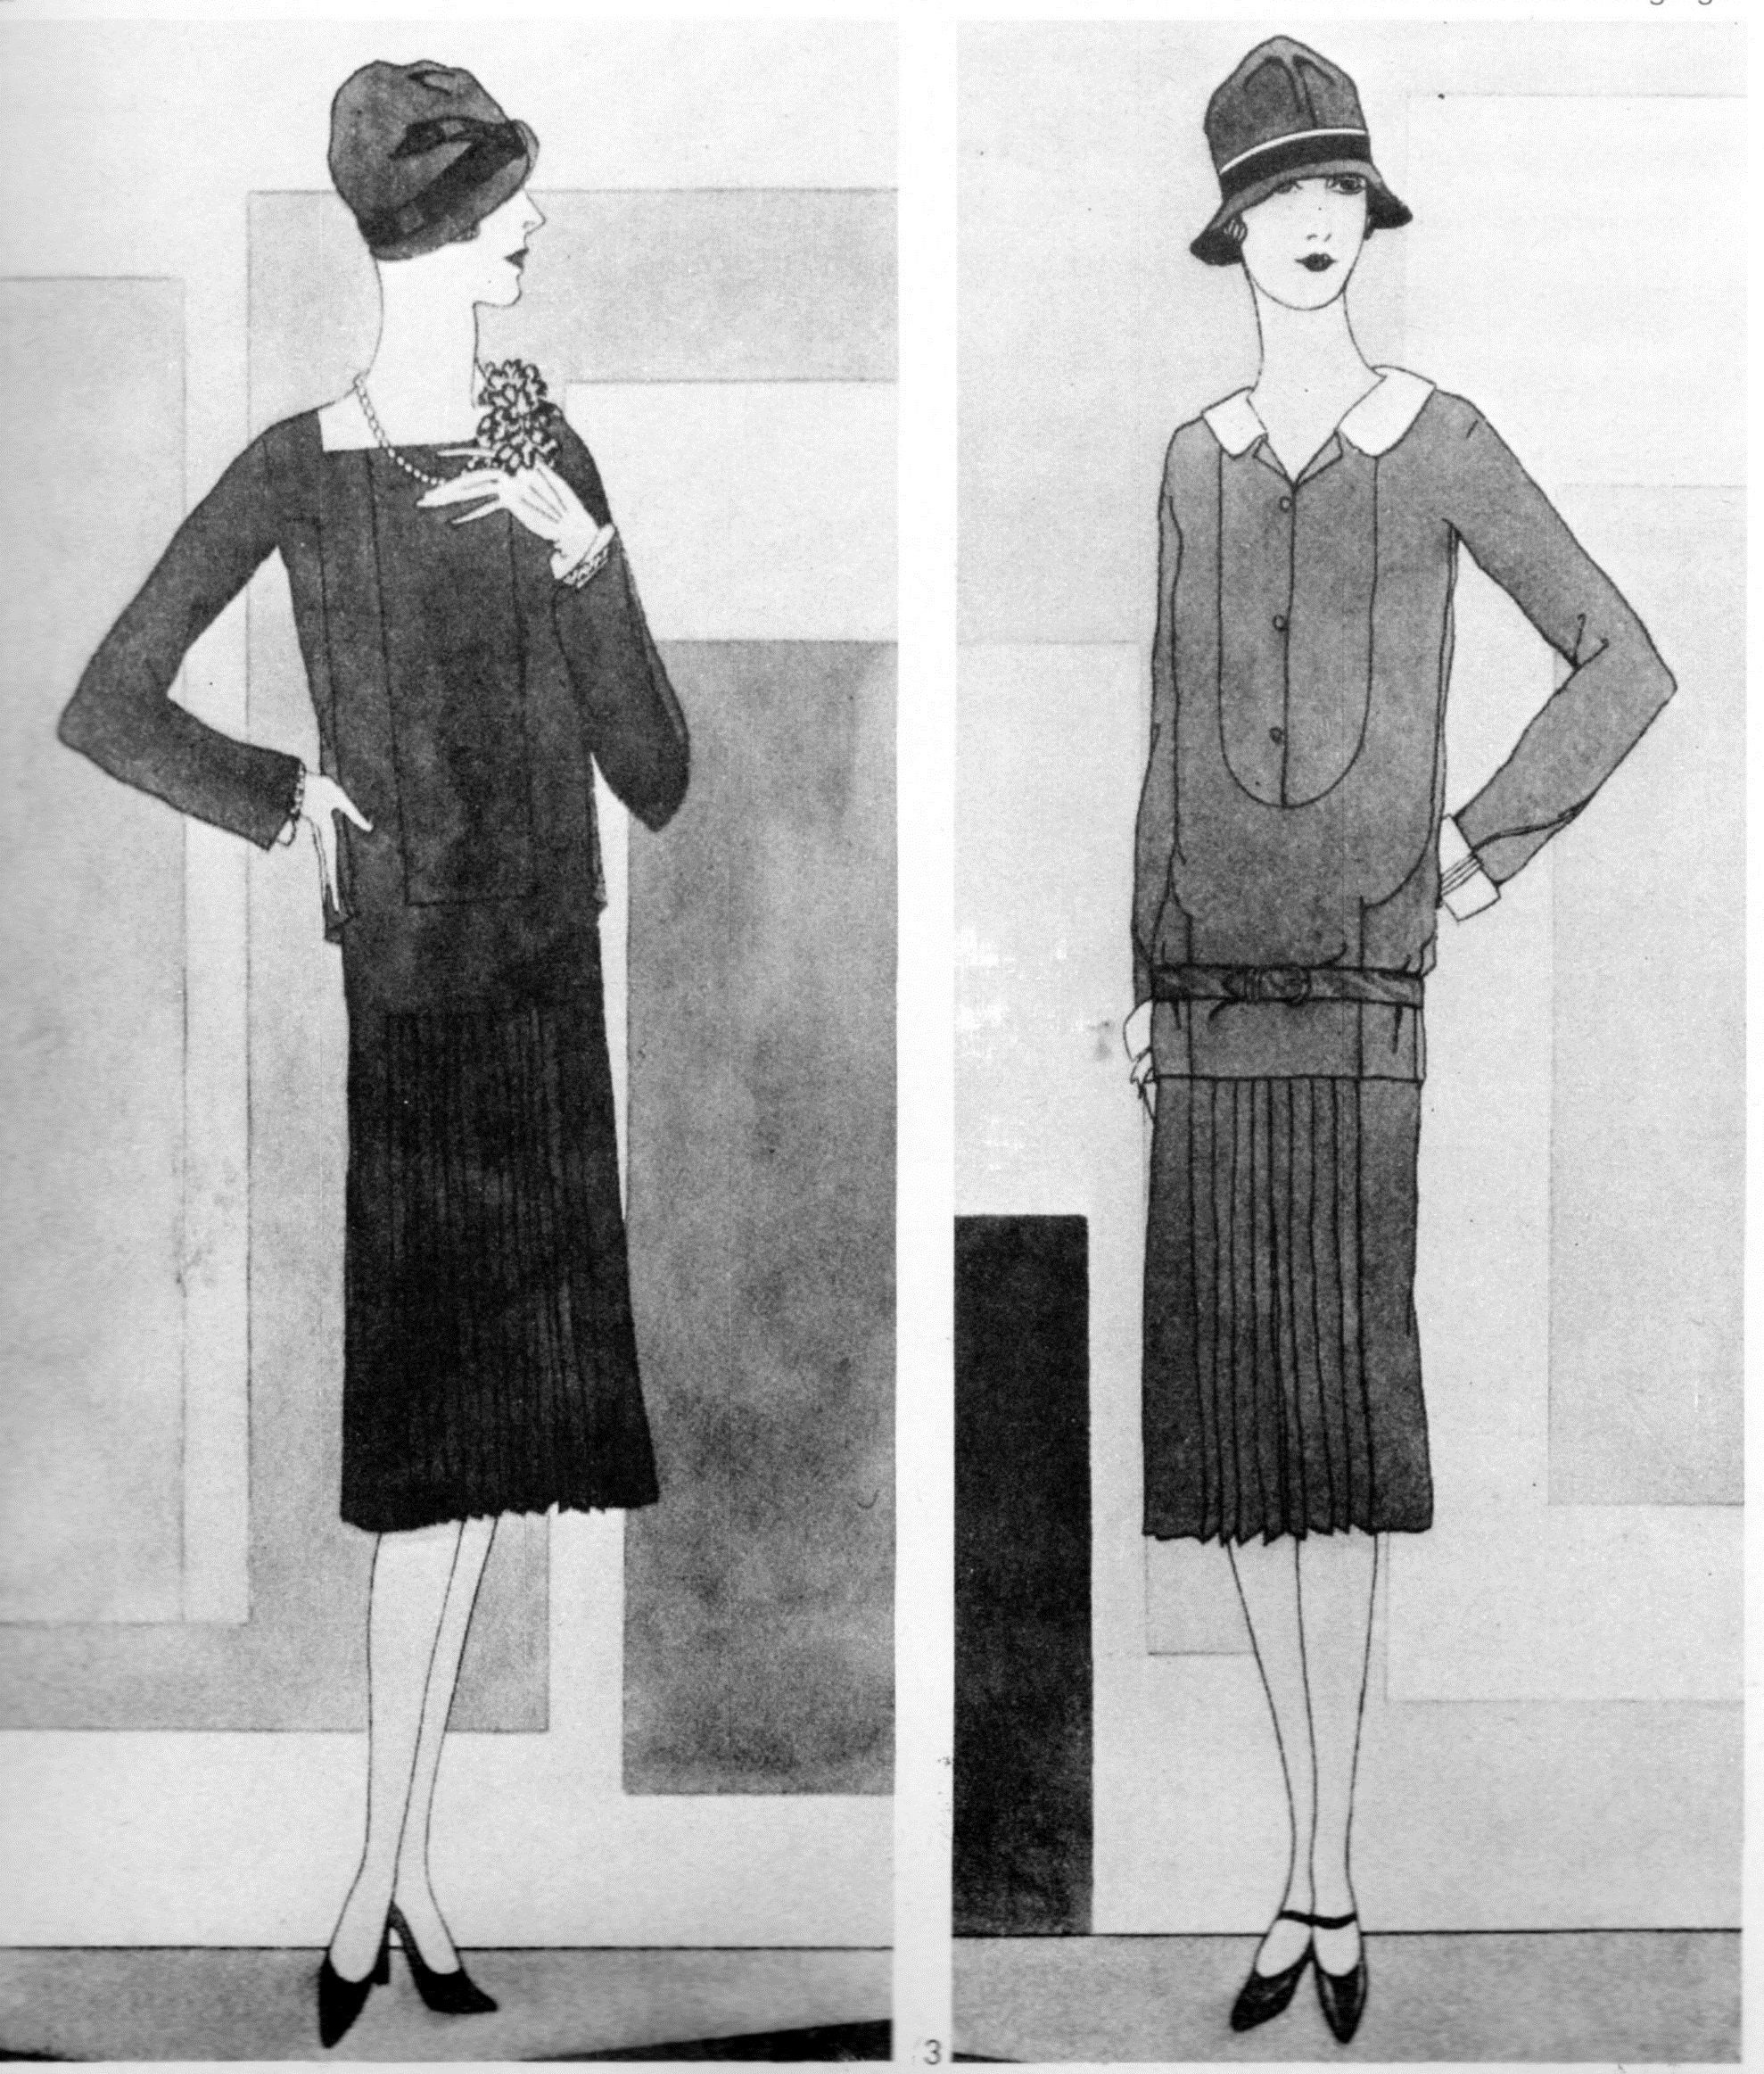 Chanel designs, 1926, in Georgina Howell, In Vogue: Six Decades of Fashion (London: Allen Lane, 1975) 83.